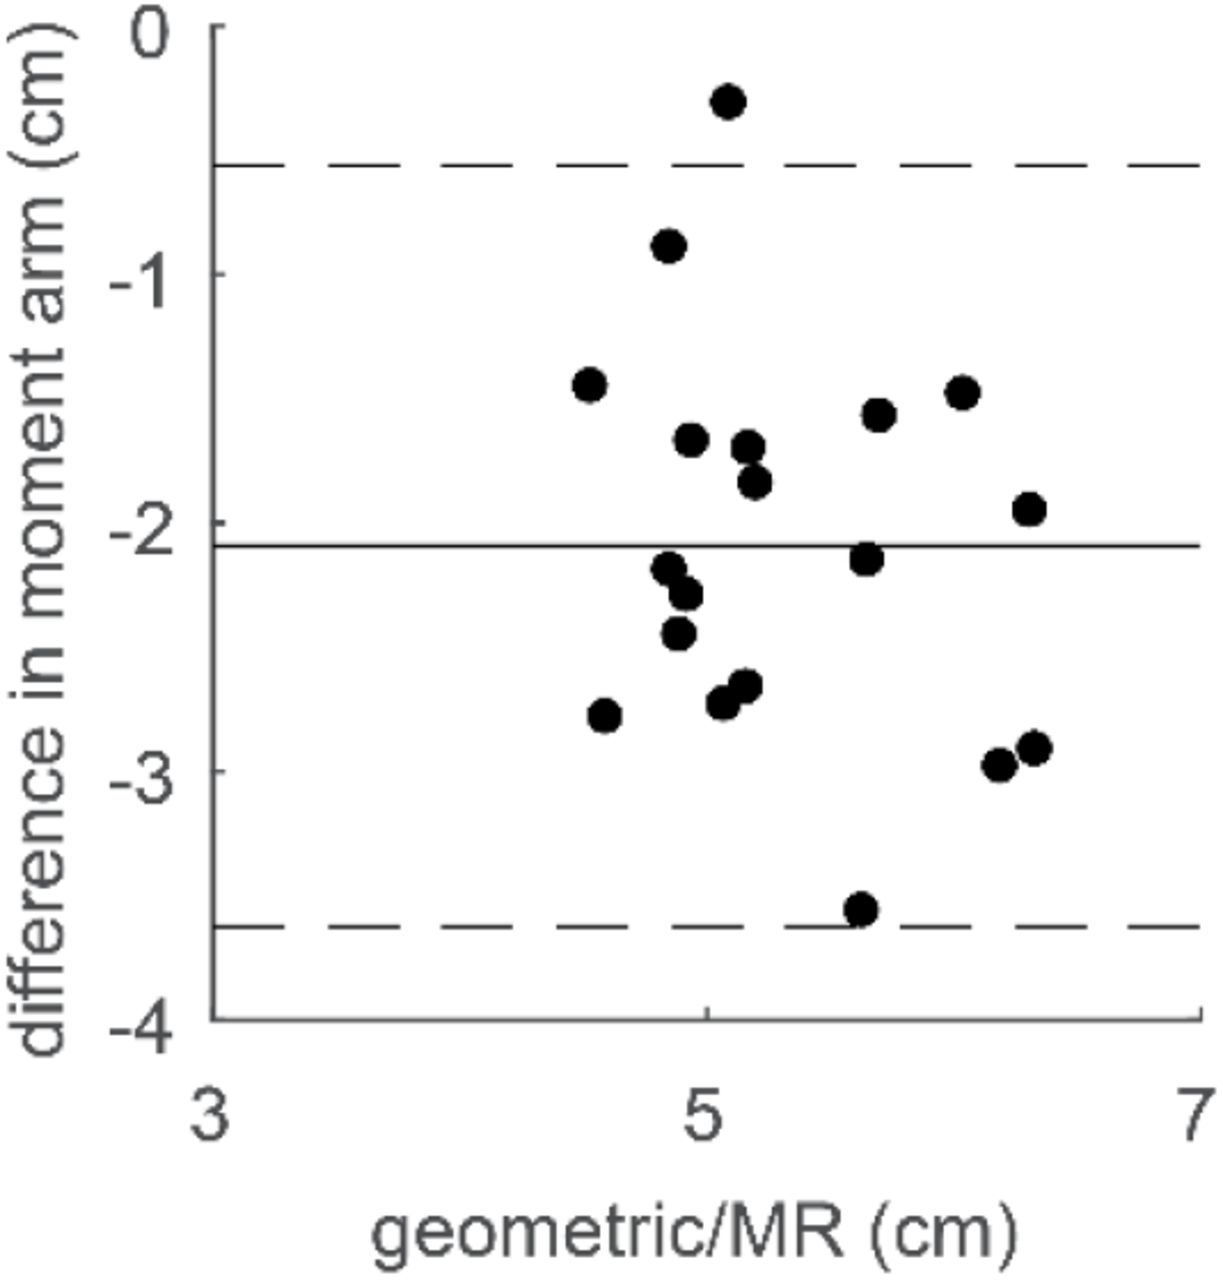 Plantarflexor Moment Arms Estimated From Tendon Excursion In